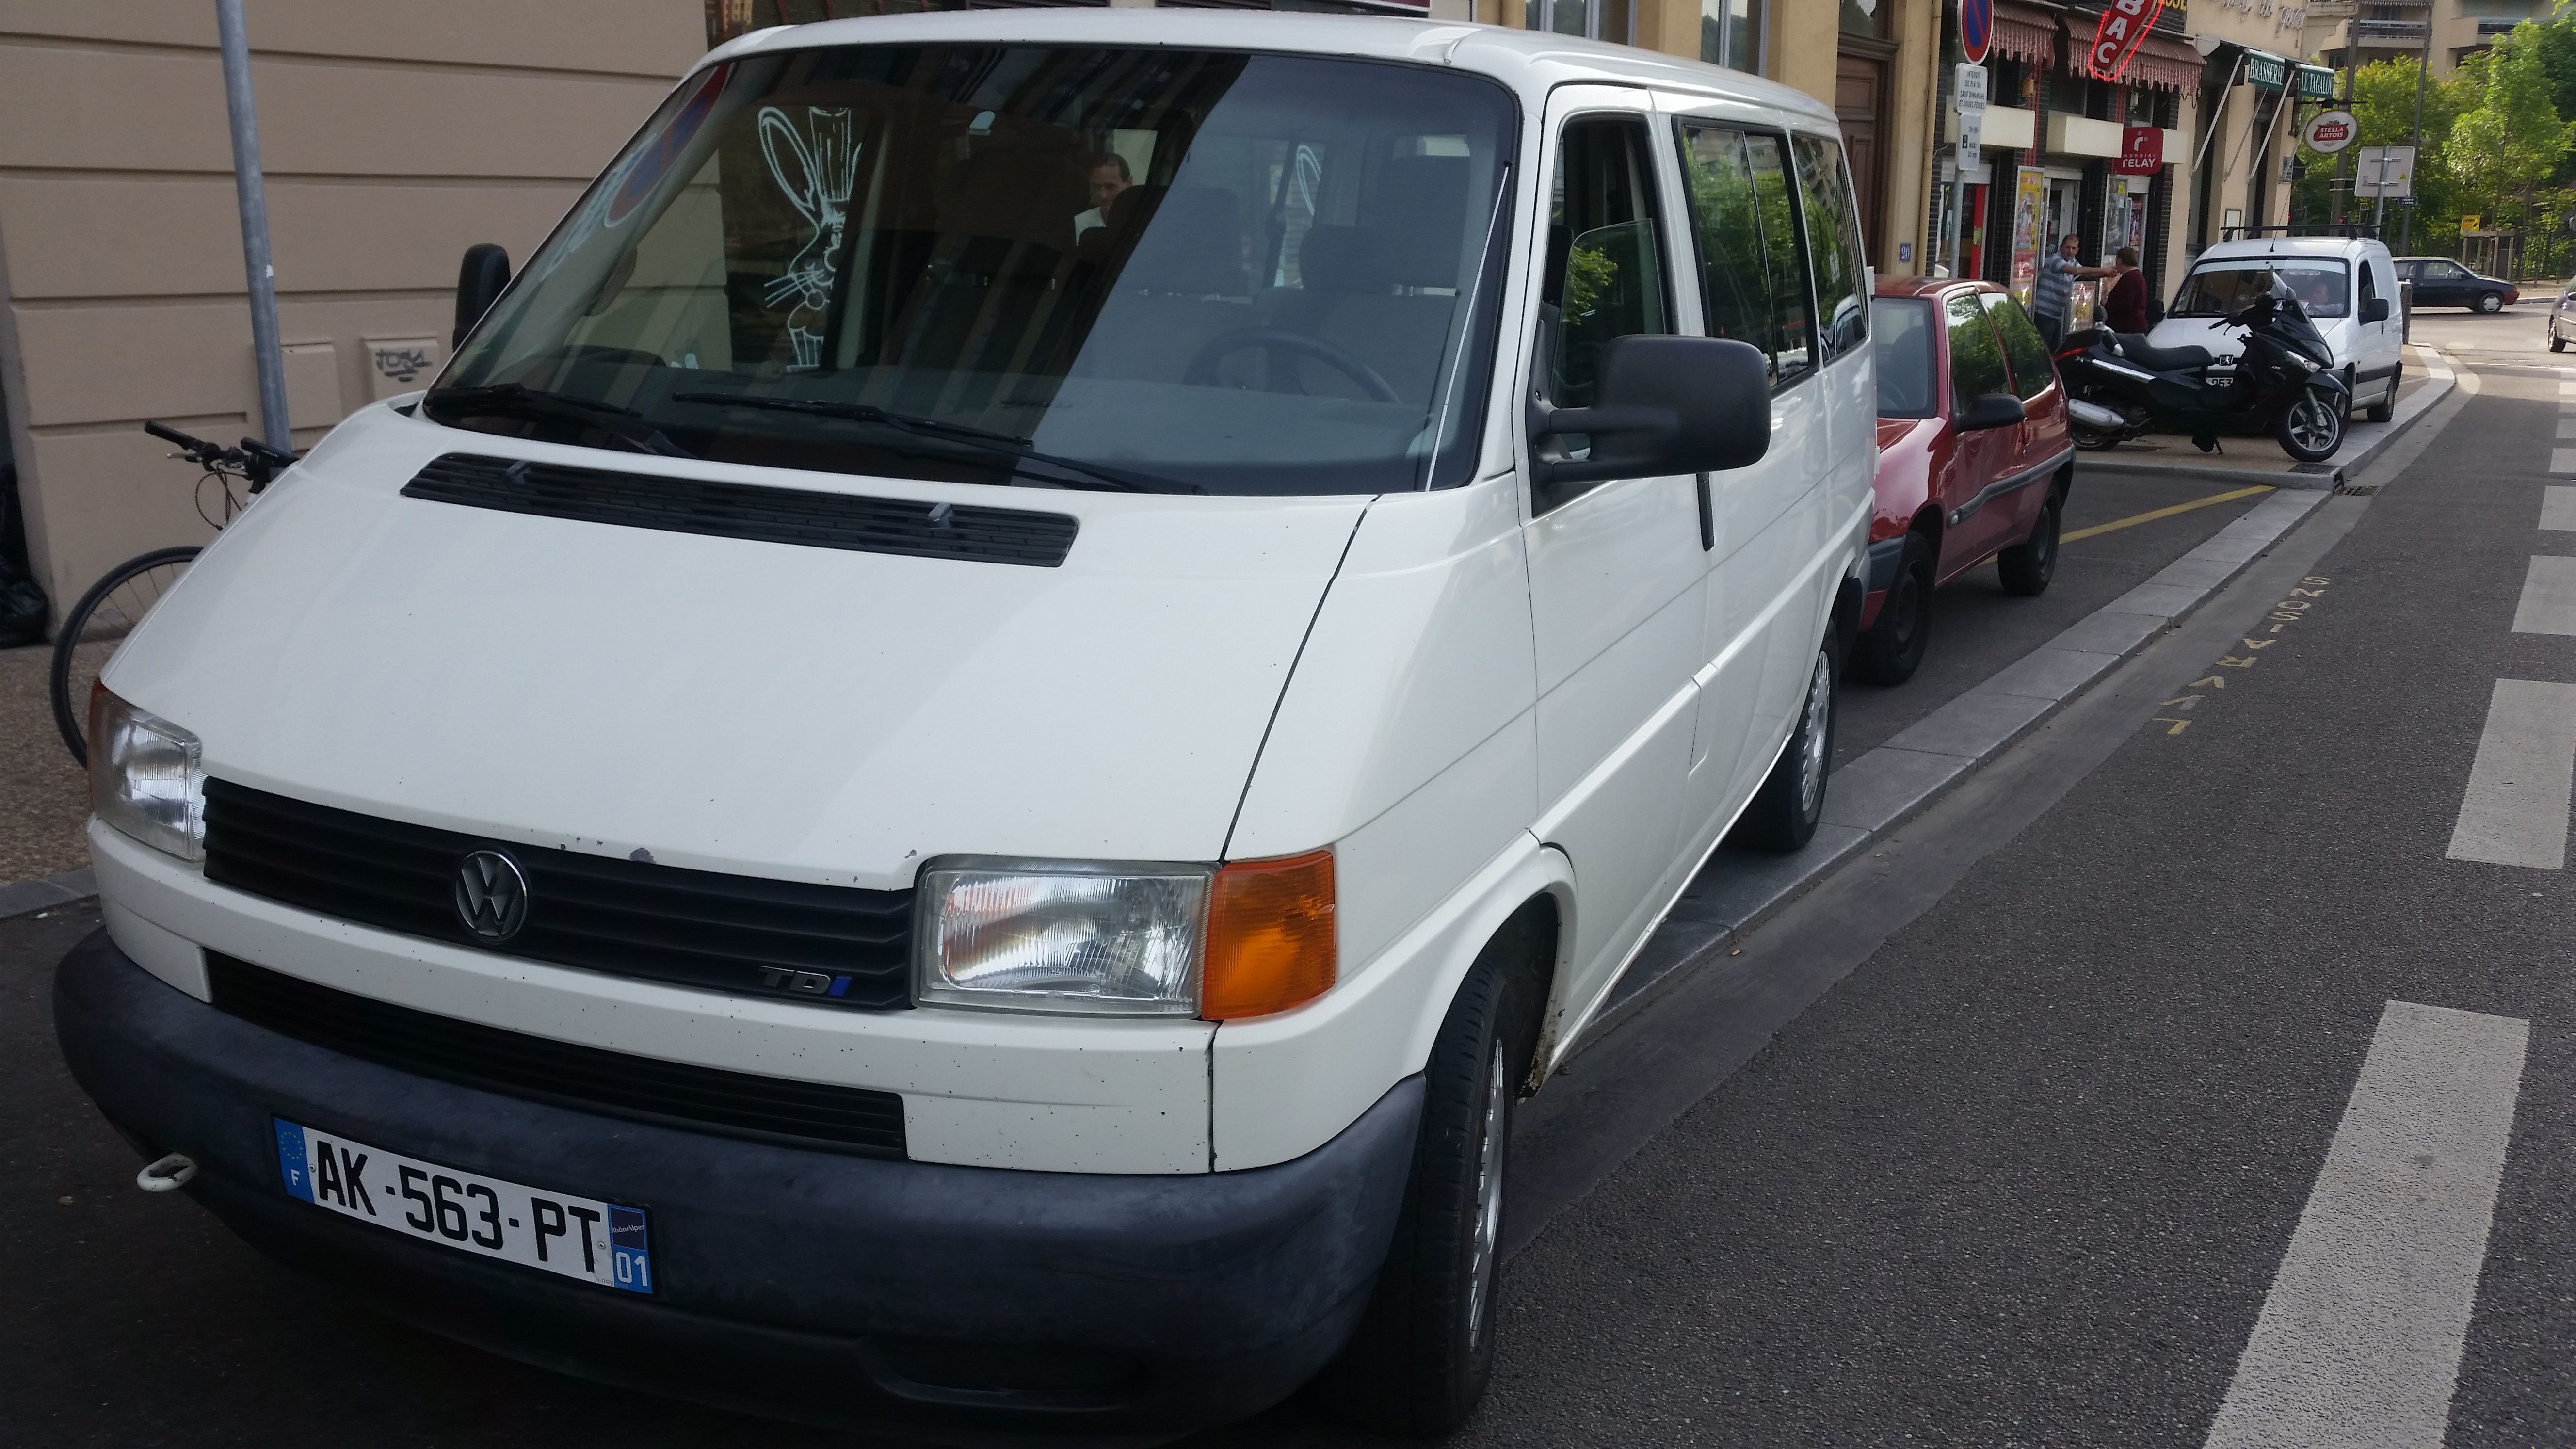 vw  transporter 2.5 tdi 9 places , 2003, Diesel, 9 places et plus